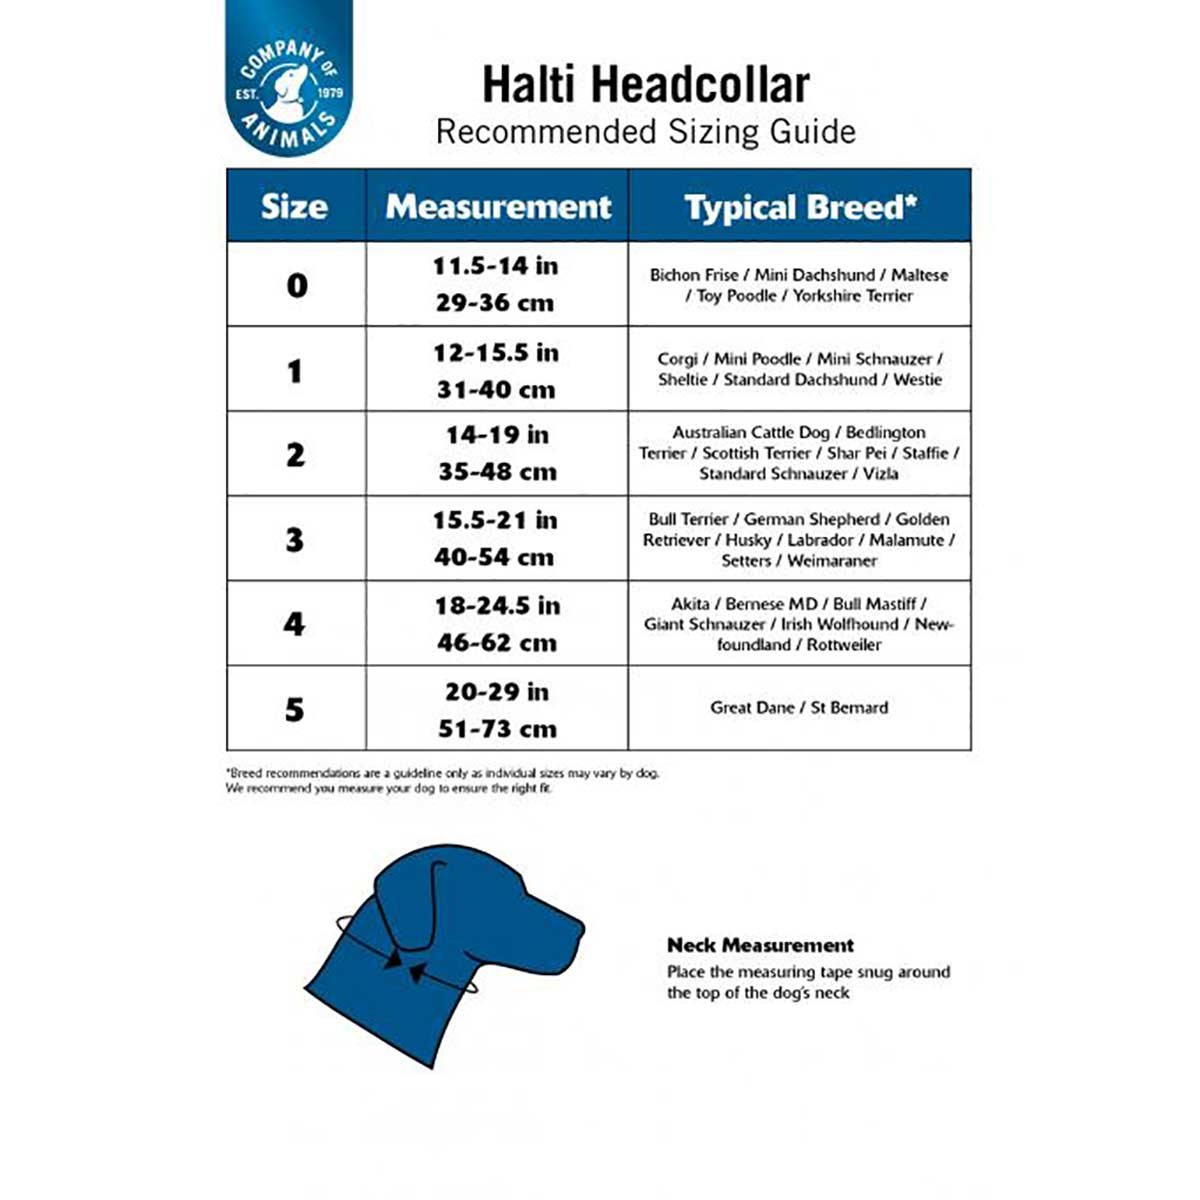 Halti Head Collar Recommended Sizing Guide